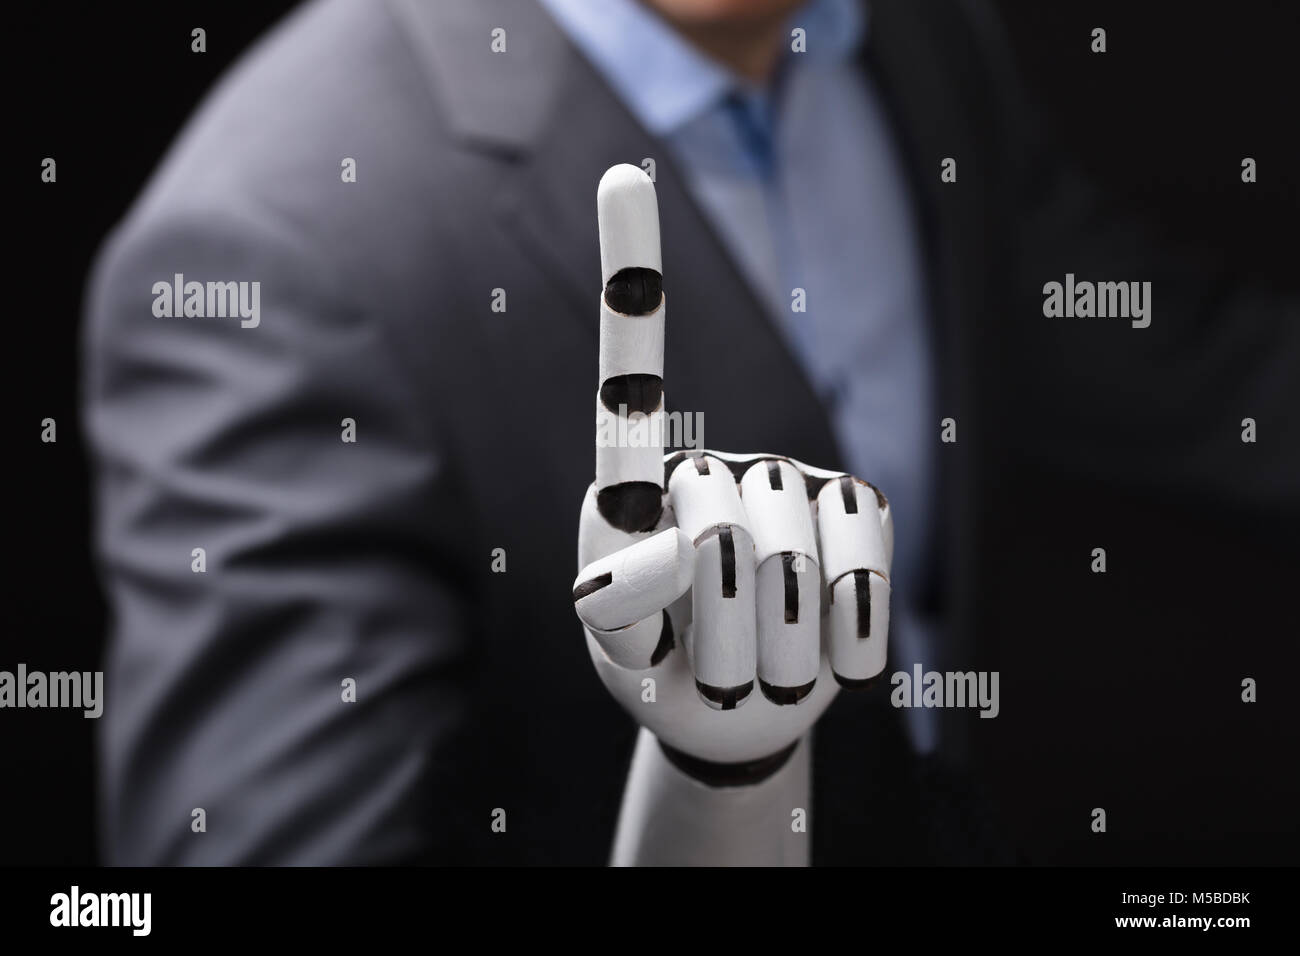 Close-up Of A Businessperson With Robotic Arm Touching Screen - Stock Image